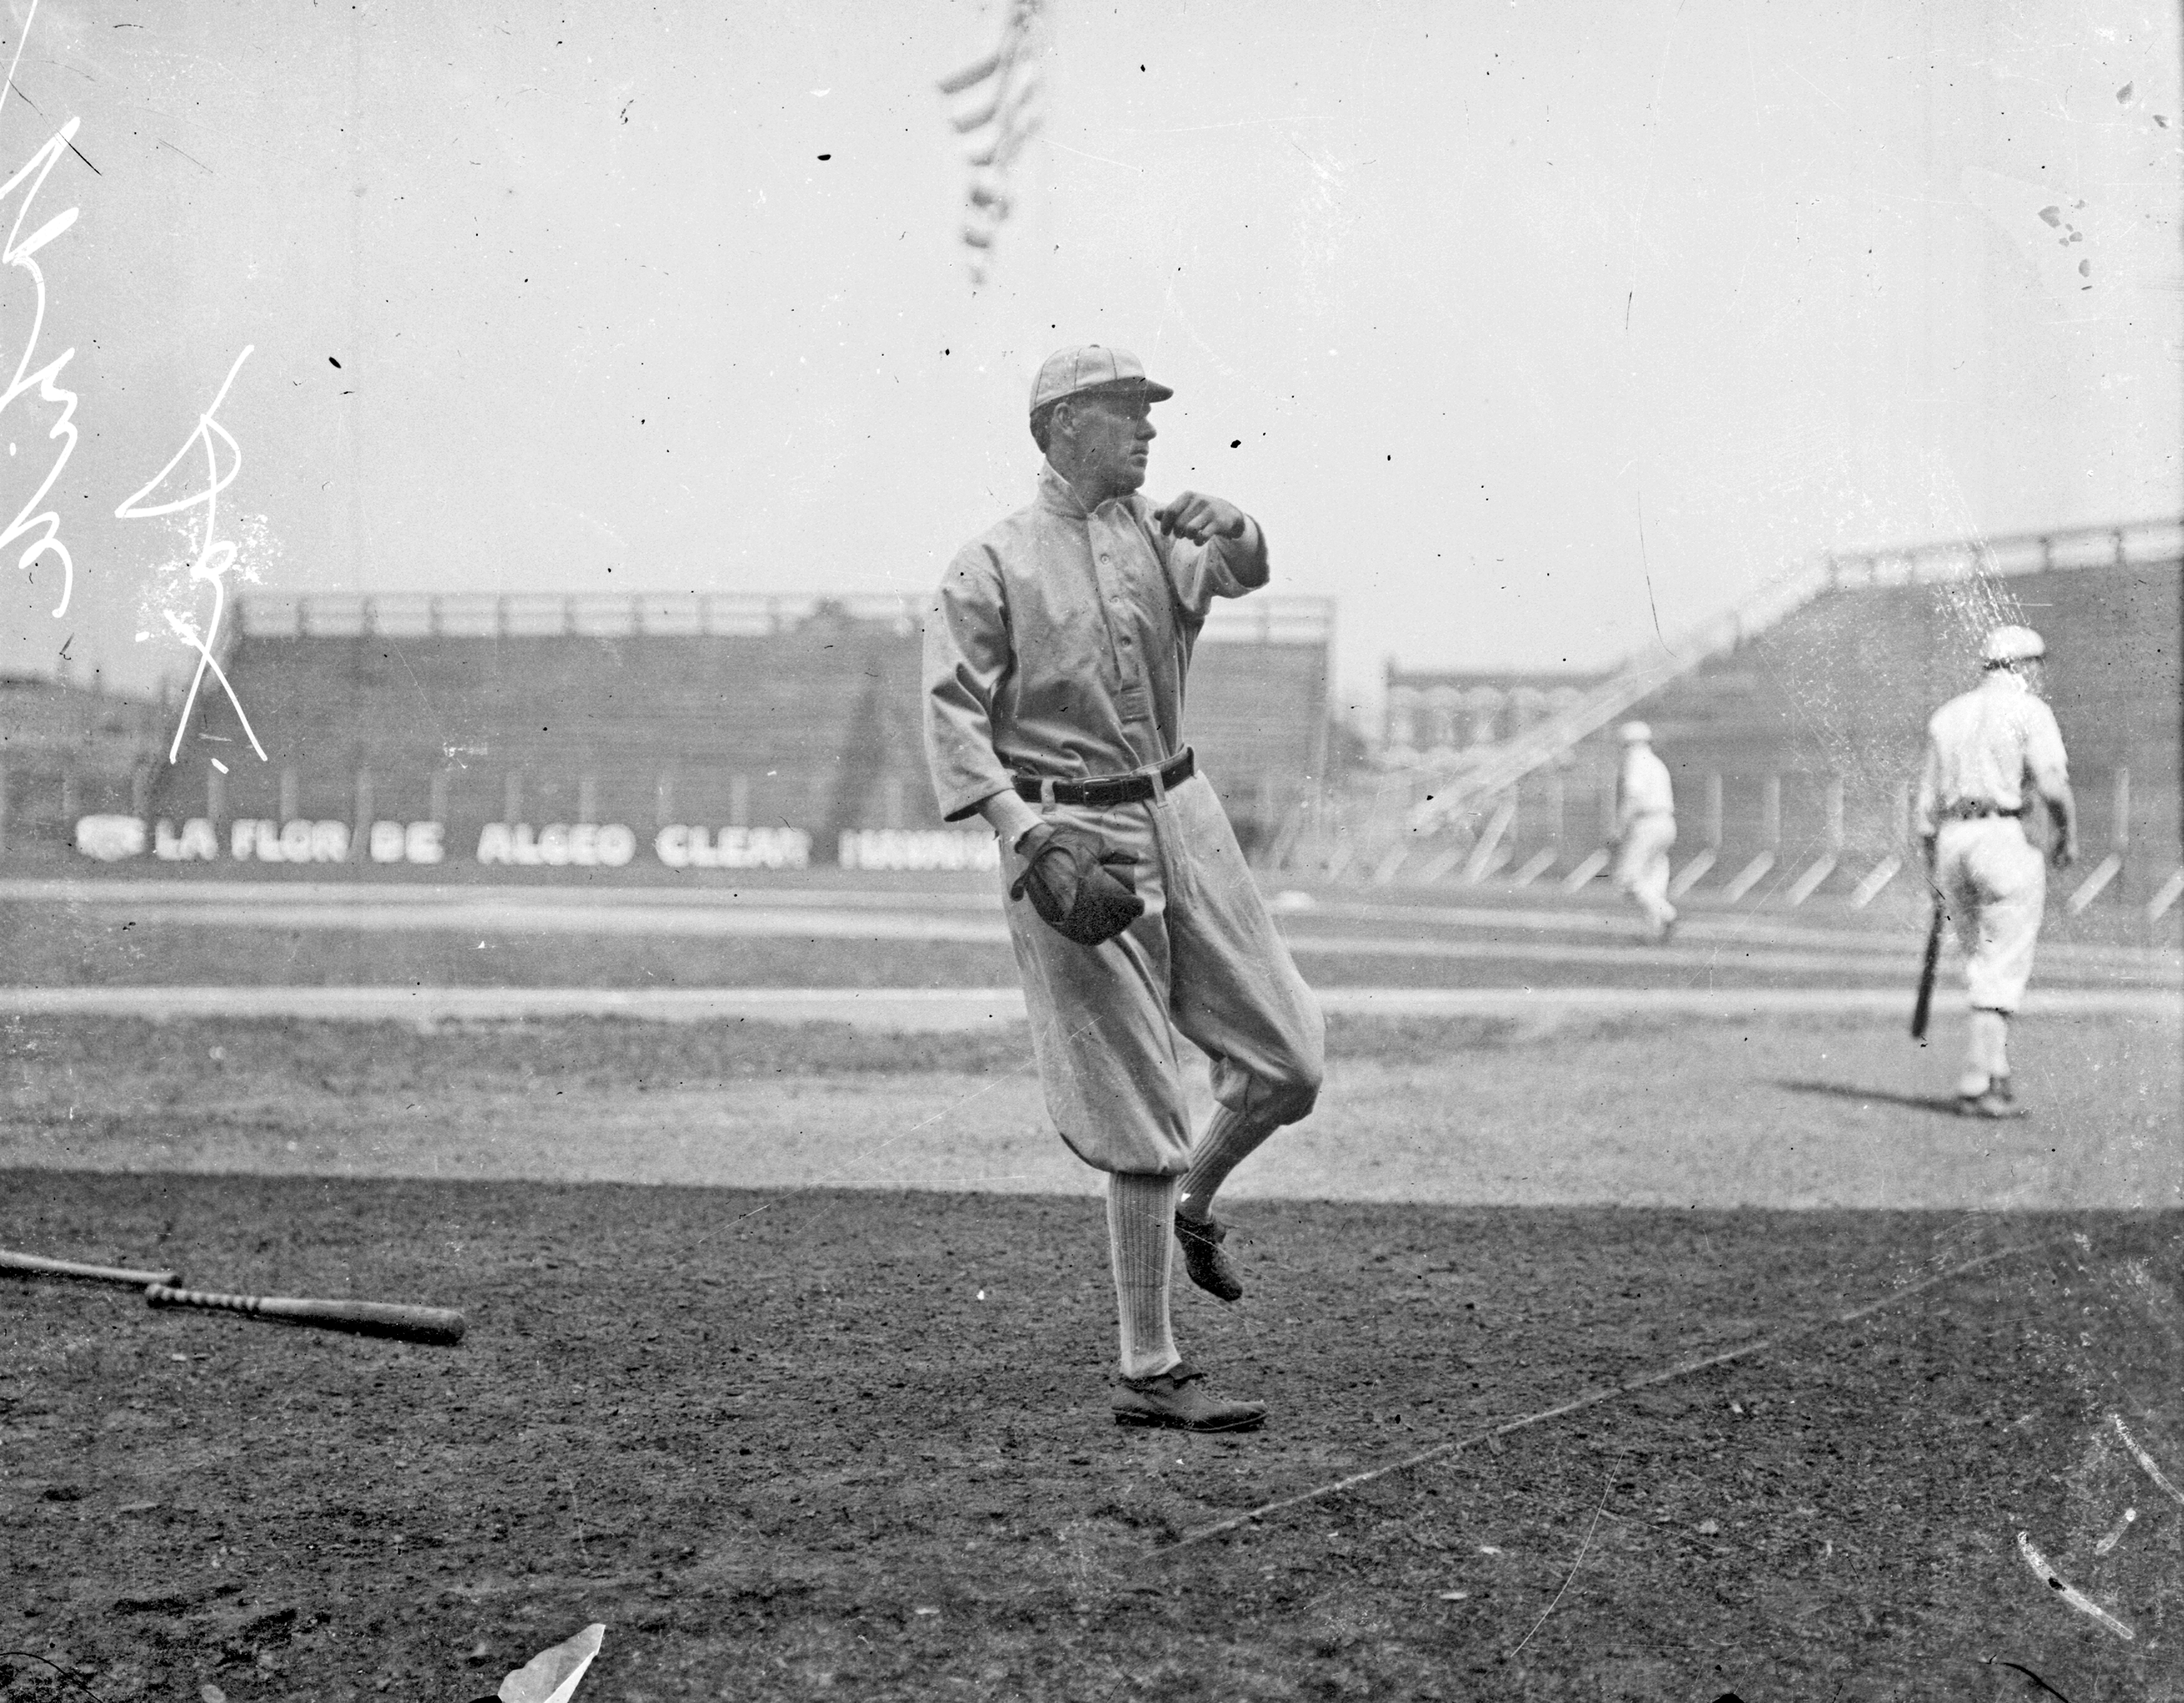 Doc White Of The Chisox